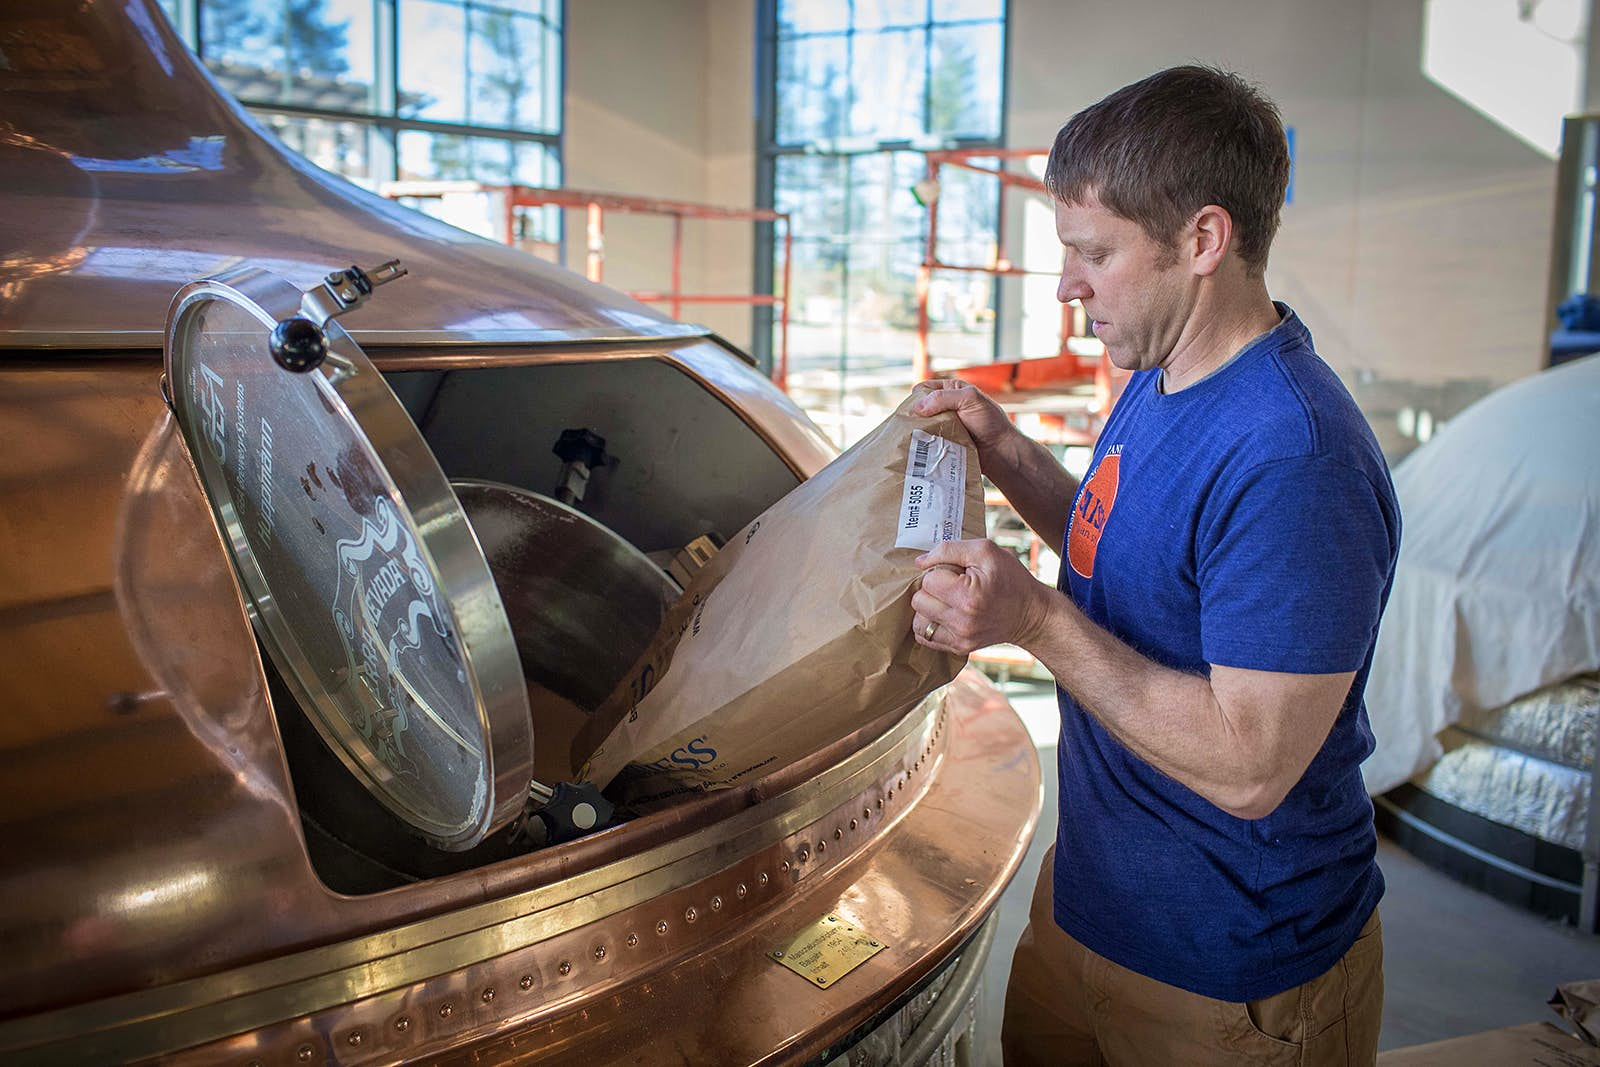 Man in blue shirt pours a sack of oats into an opening ina an old-fashioned copper still as part of the beer-making process. Craft breweries around the country take its products seriously.